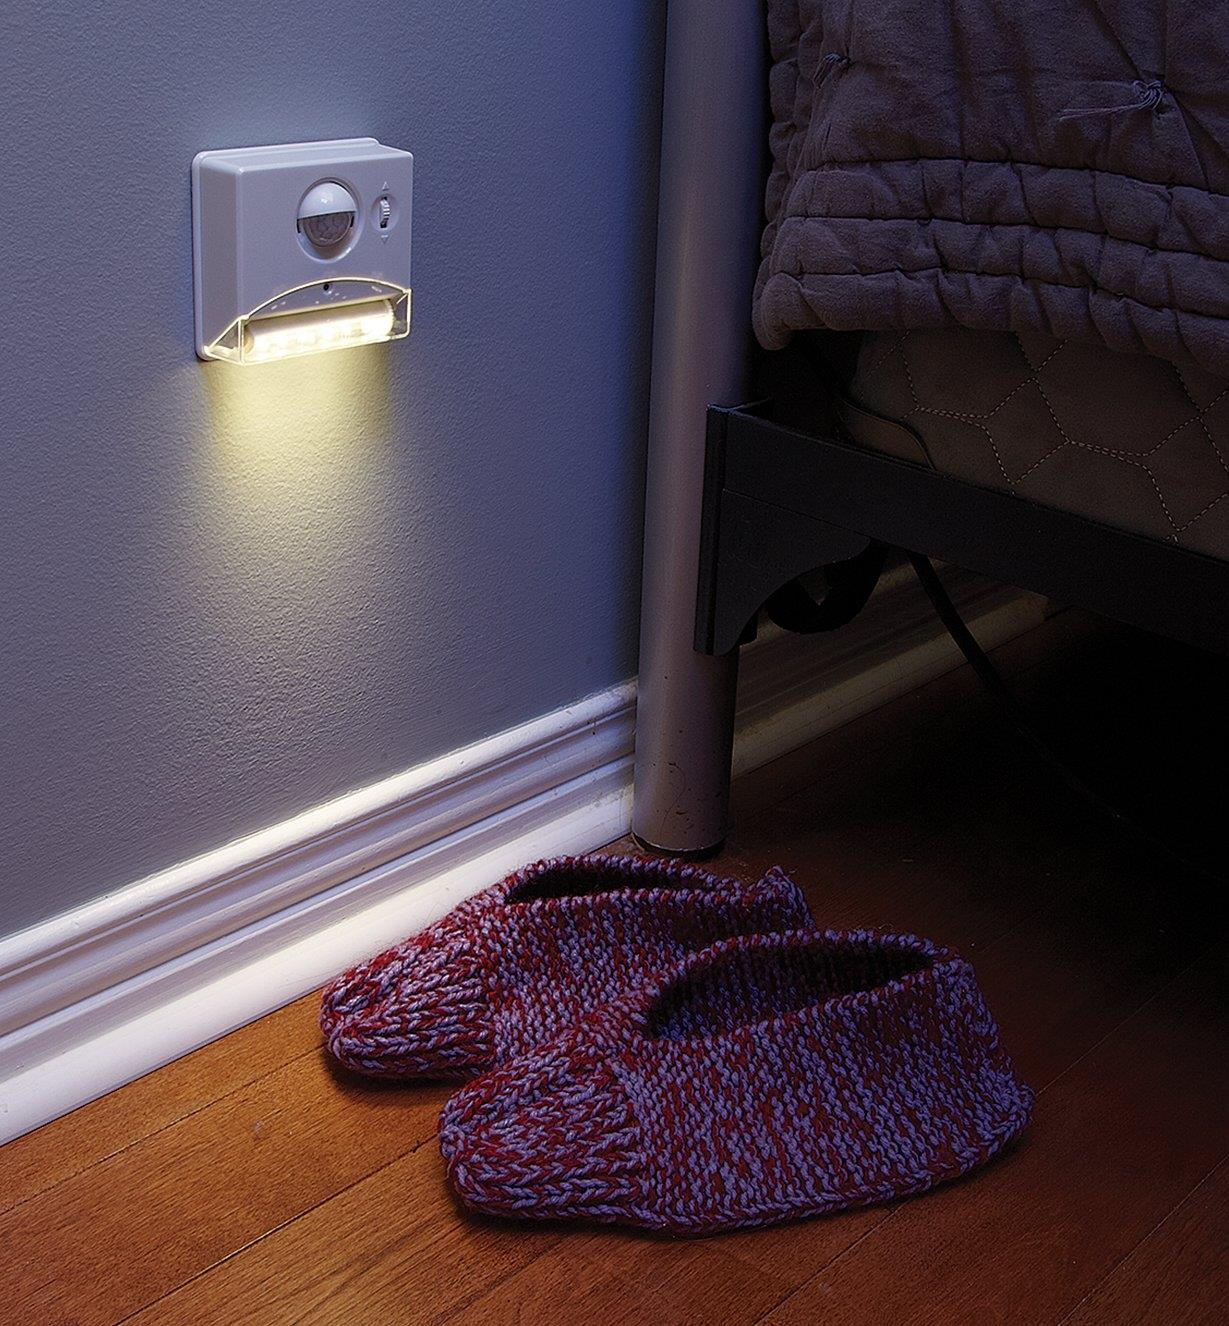 Controlled Beam PIR Light mounted on a wall beside a bed, illuminating a pair of slippers on the floor